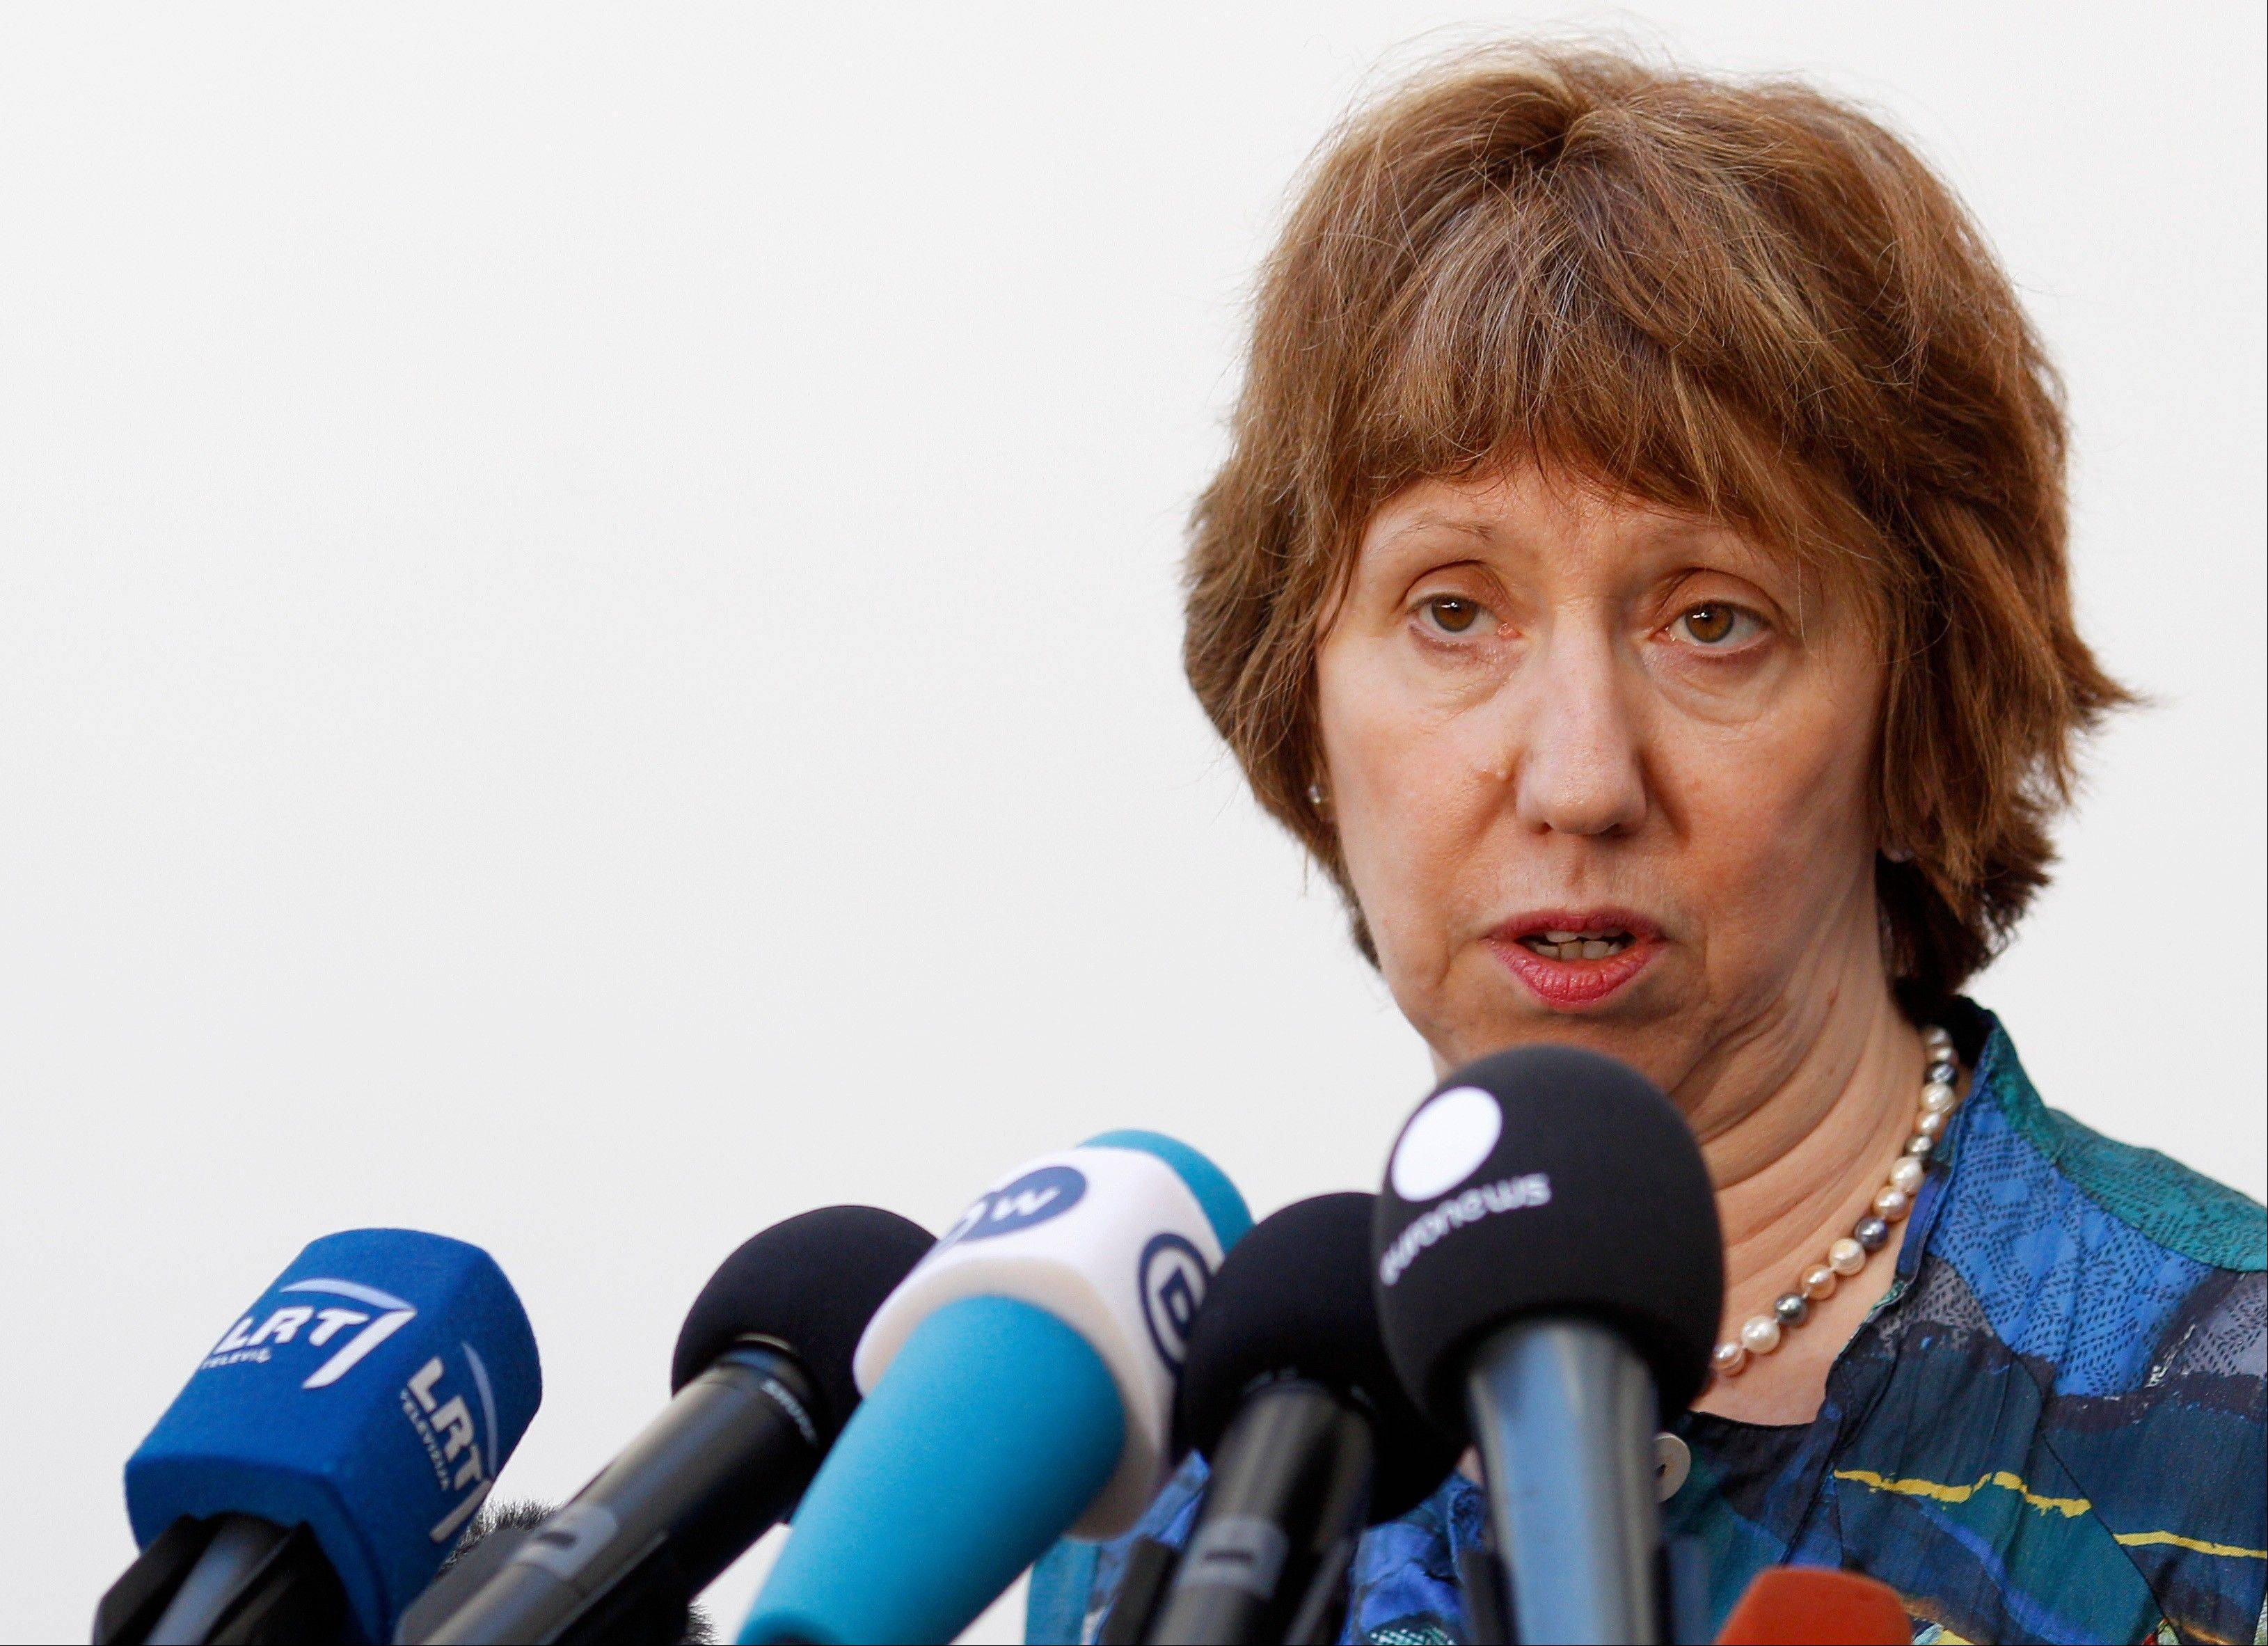 European foreign policy chief Catherine Ashton talks with journalists as she arrives for an informal meeting of EU Ministers for Foreign Affairs in Lithuania, Friday, Sept. 6, 2013. In a setback for Western efforts to tighten sanctions against Iran, a top European Union court on Friday threw out penalties imposed on several Iranian businesses for their alleged ties to the country�s disputed nuclear program.